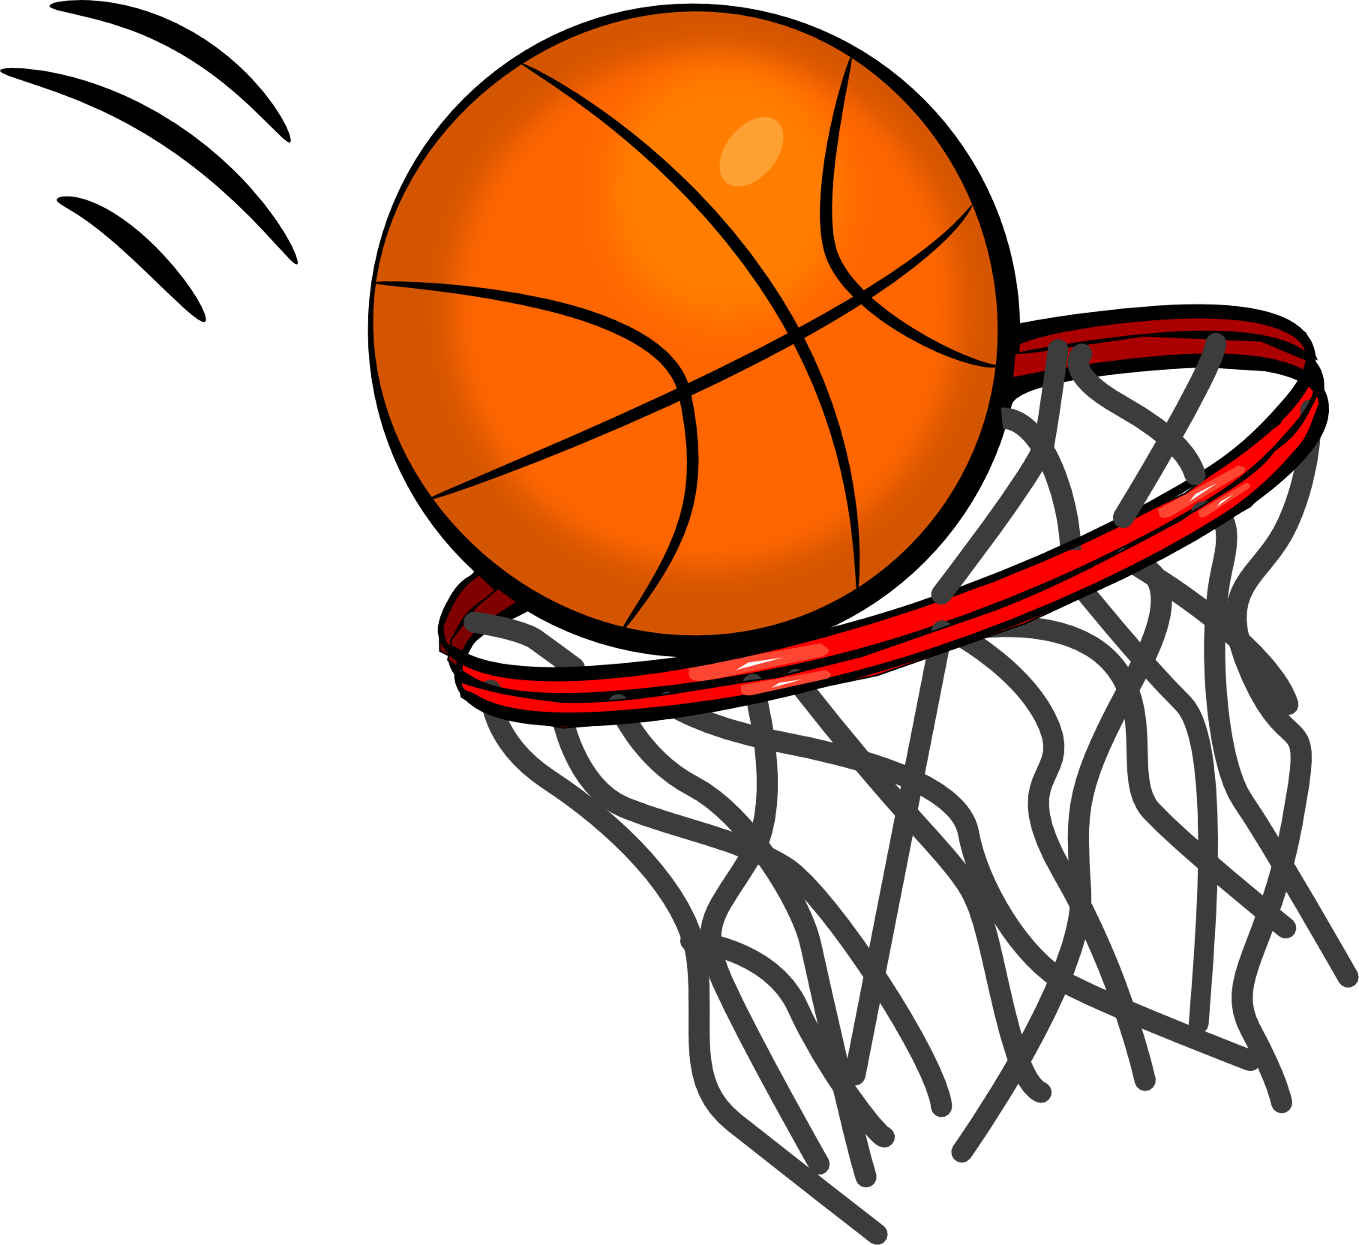 Basketball clipart printable.  collection of transparent